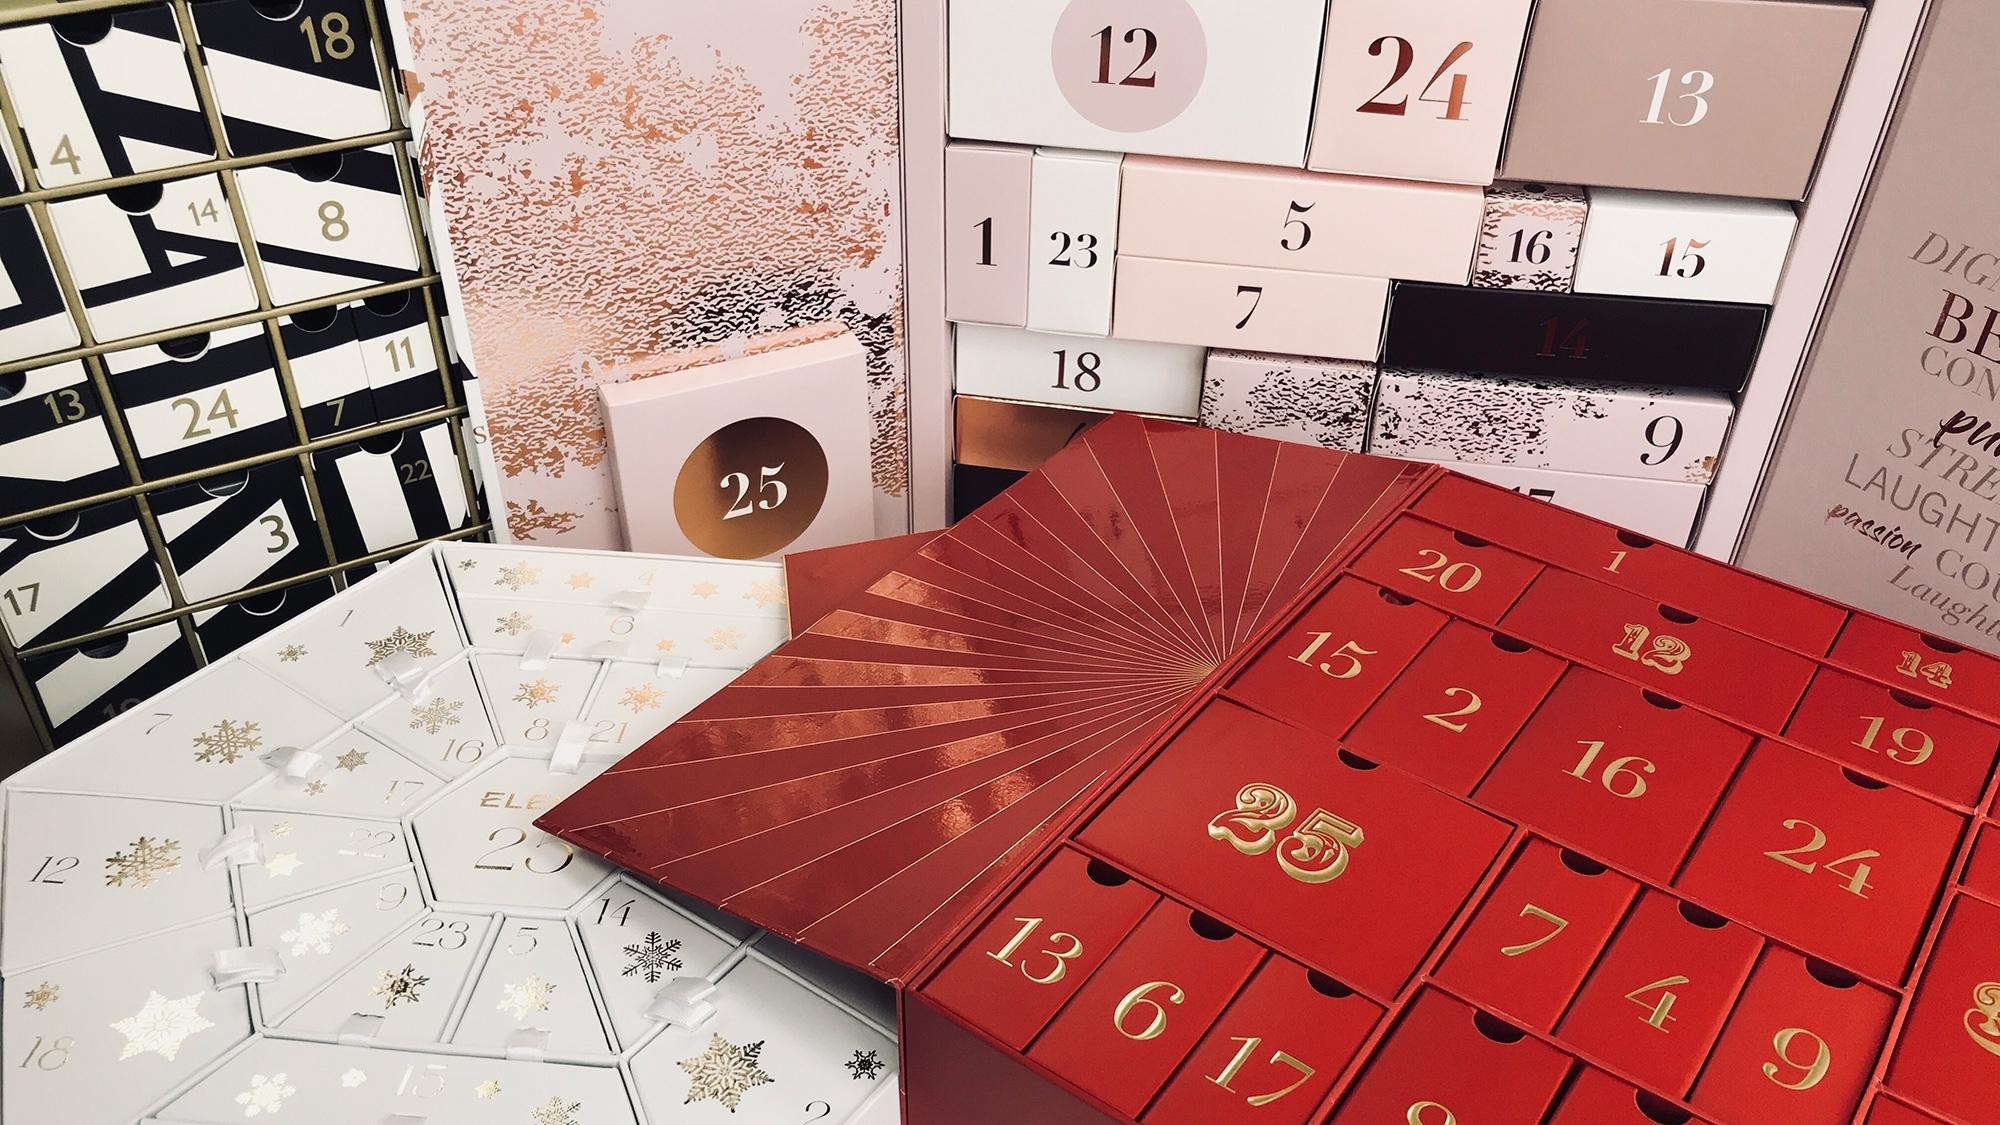 Beauty Advent Calendars On Sale: Bag A Bargain Before 2019 within 12 Month Photo Calendar Ideas Naughty